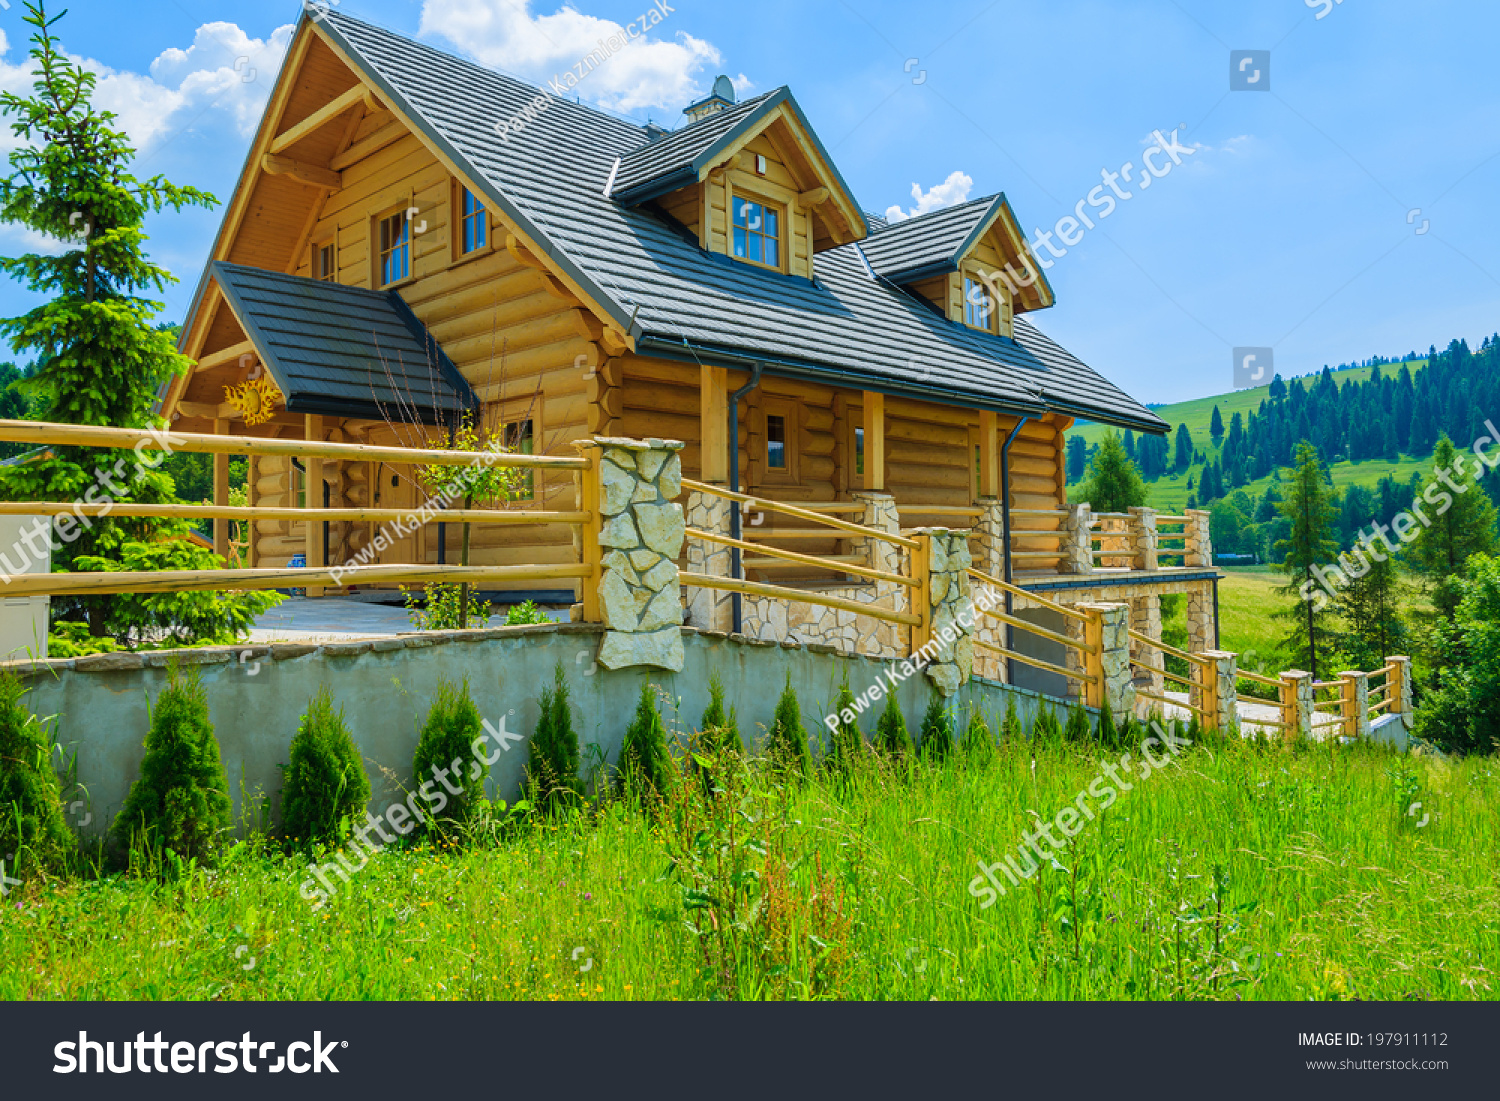 Traditional wooden mountain house on green stock photo 197911112 shutterstock - Summer houses mountains ...